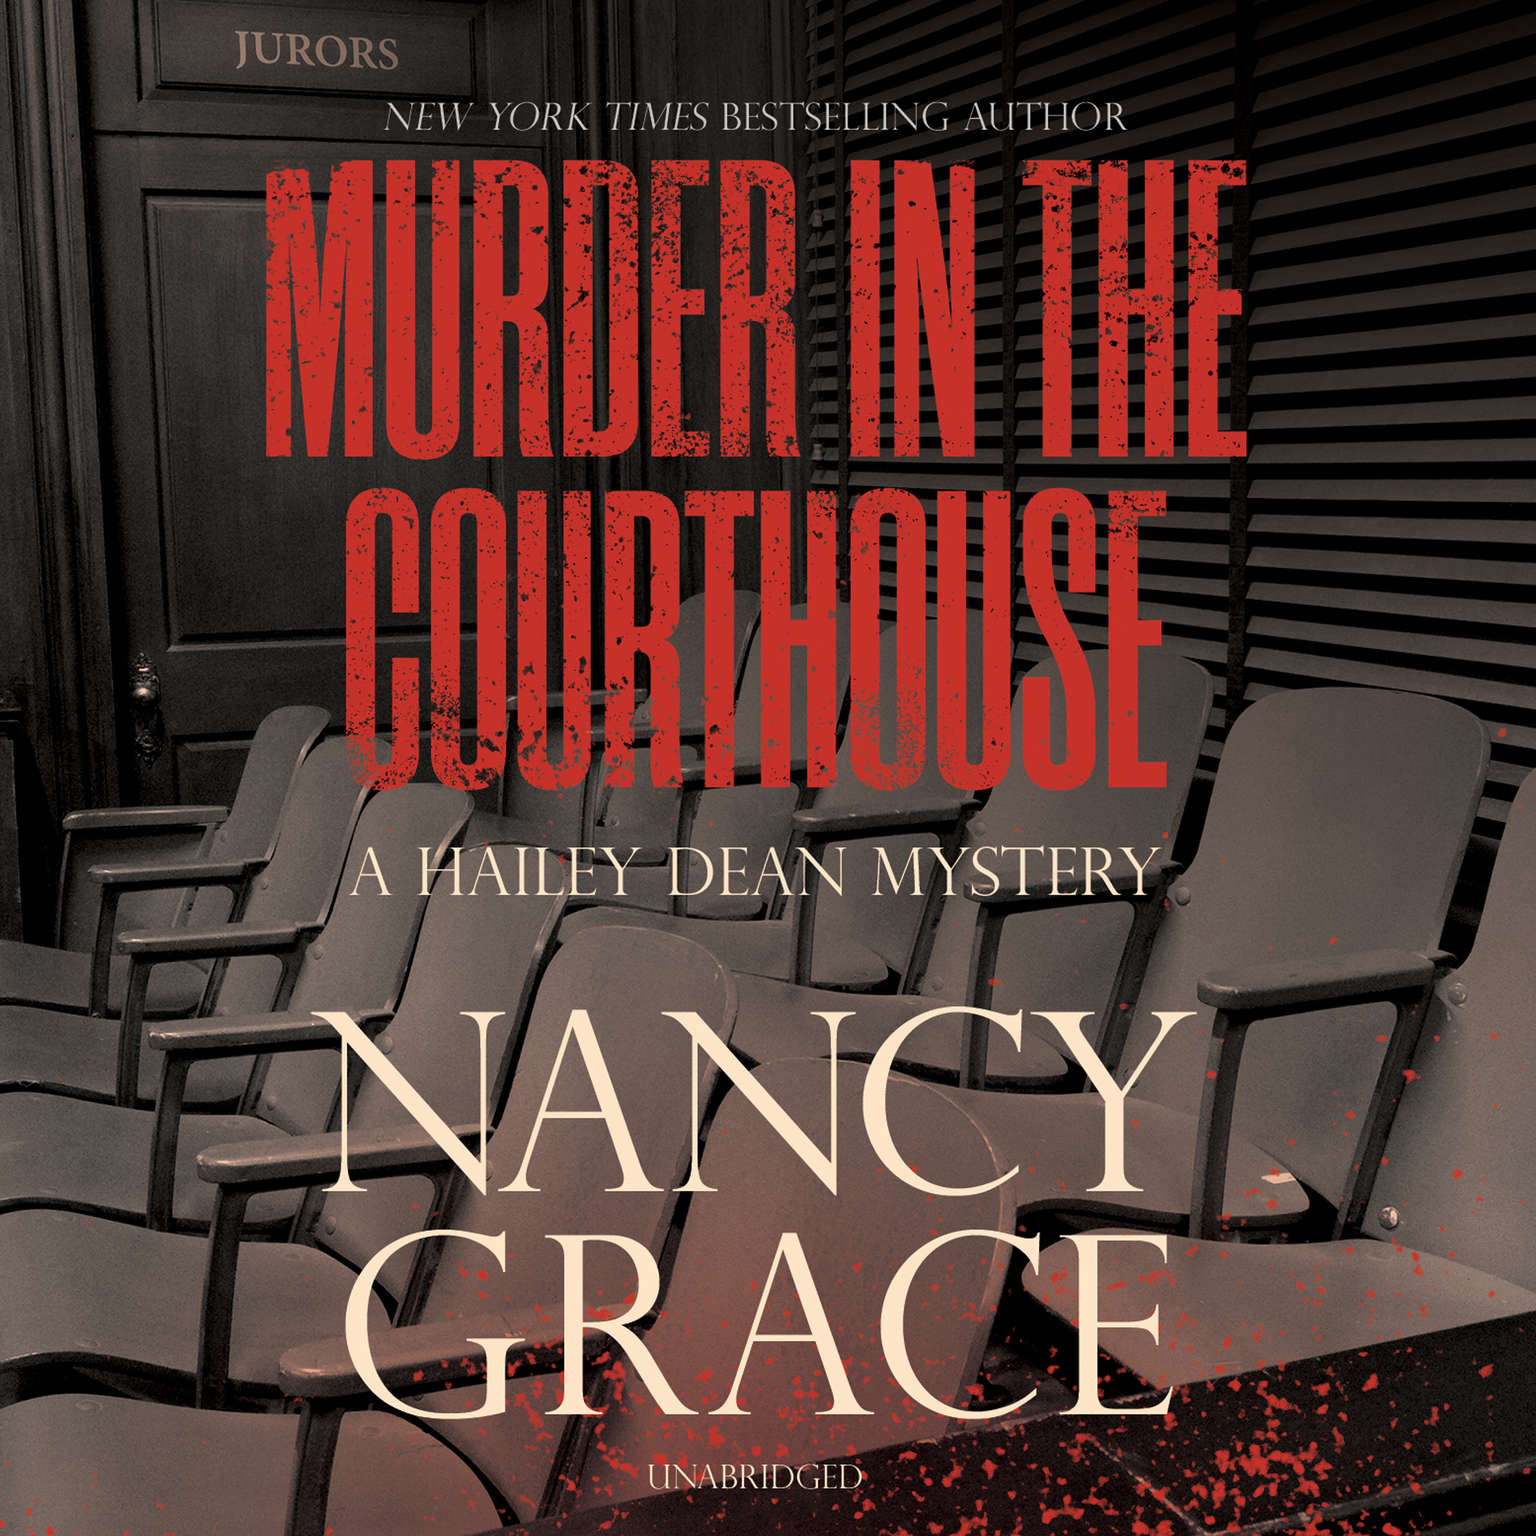 Printable Murder in the Courthouse: A Hailey Dean Mystery Audiobook Cover Art